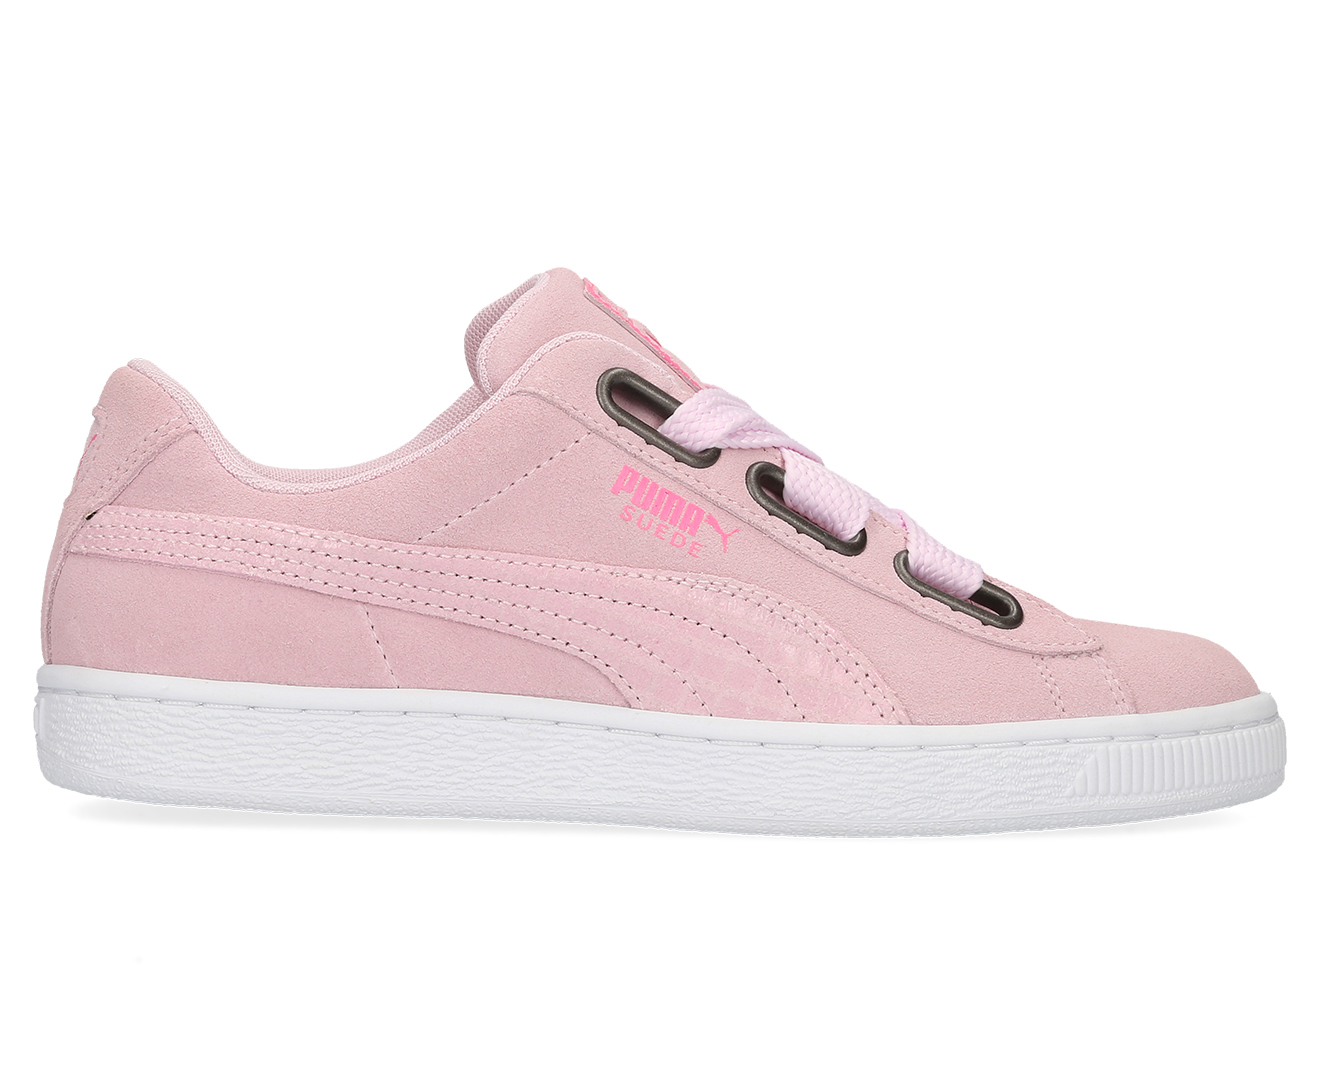 Details about PUMA Women's Suede Heart Street 2 Shoe Winsome Orchid